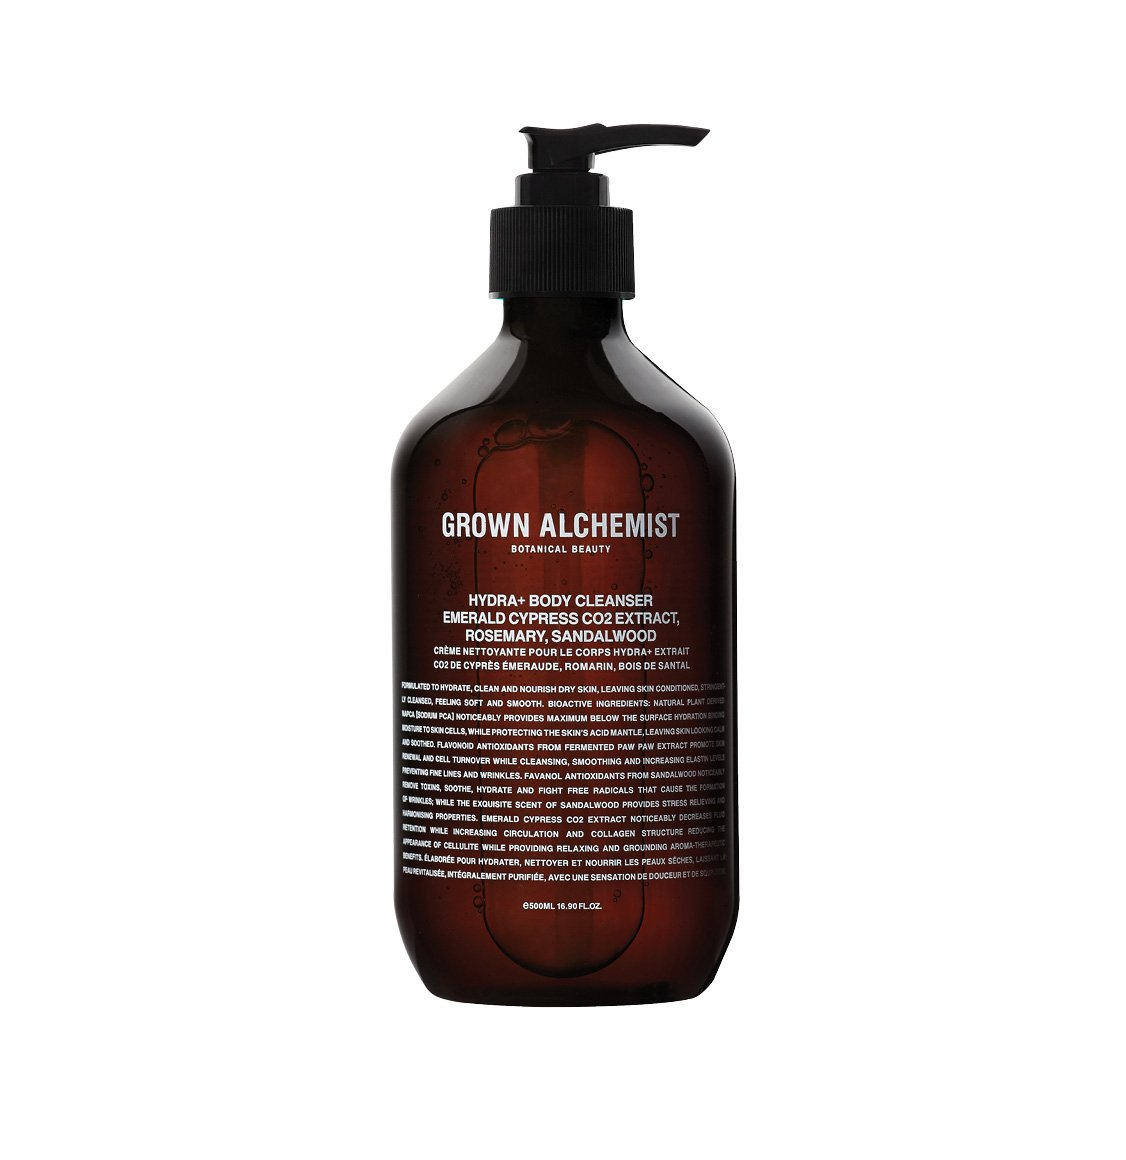 Grown_Alchemist_Hydra_Body_Cleanser_Emerald_Cypress_Co2_Extract_Rosemary_Sandalwood_The_Project_Garments_A